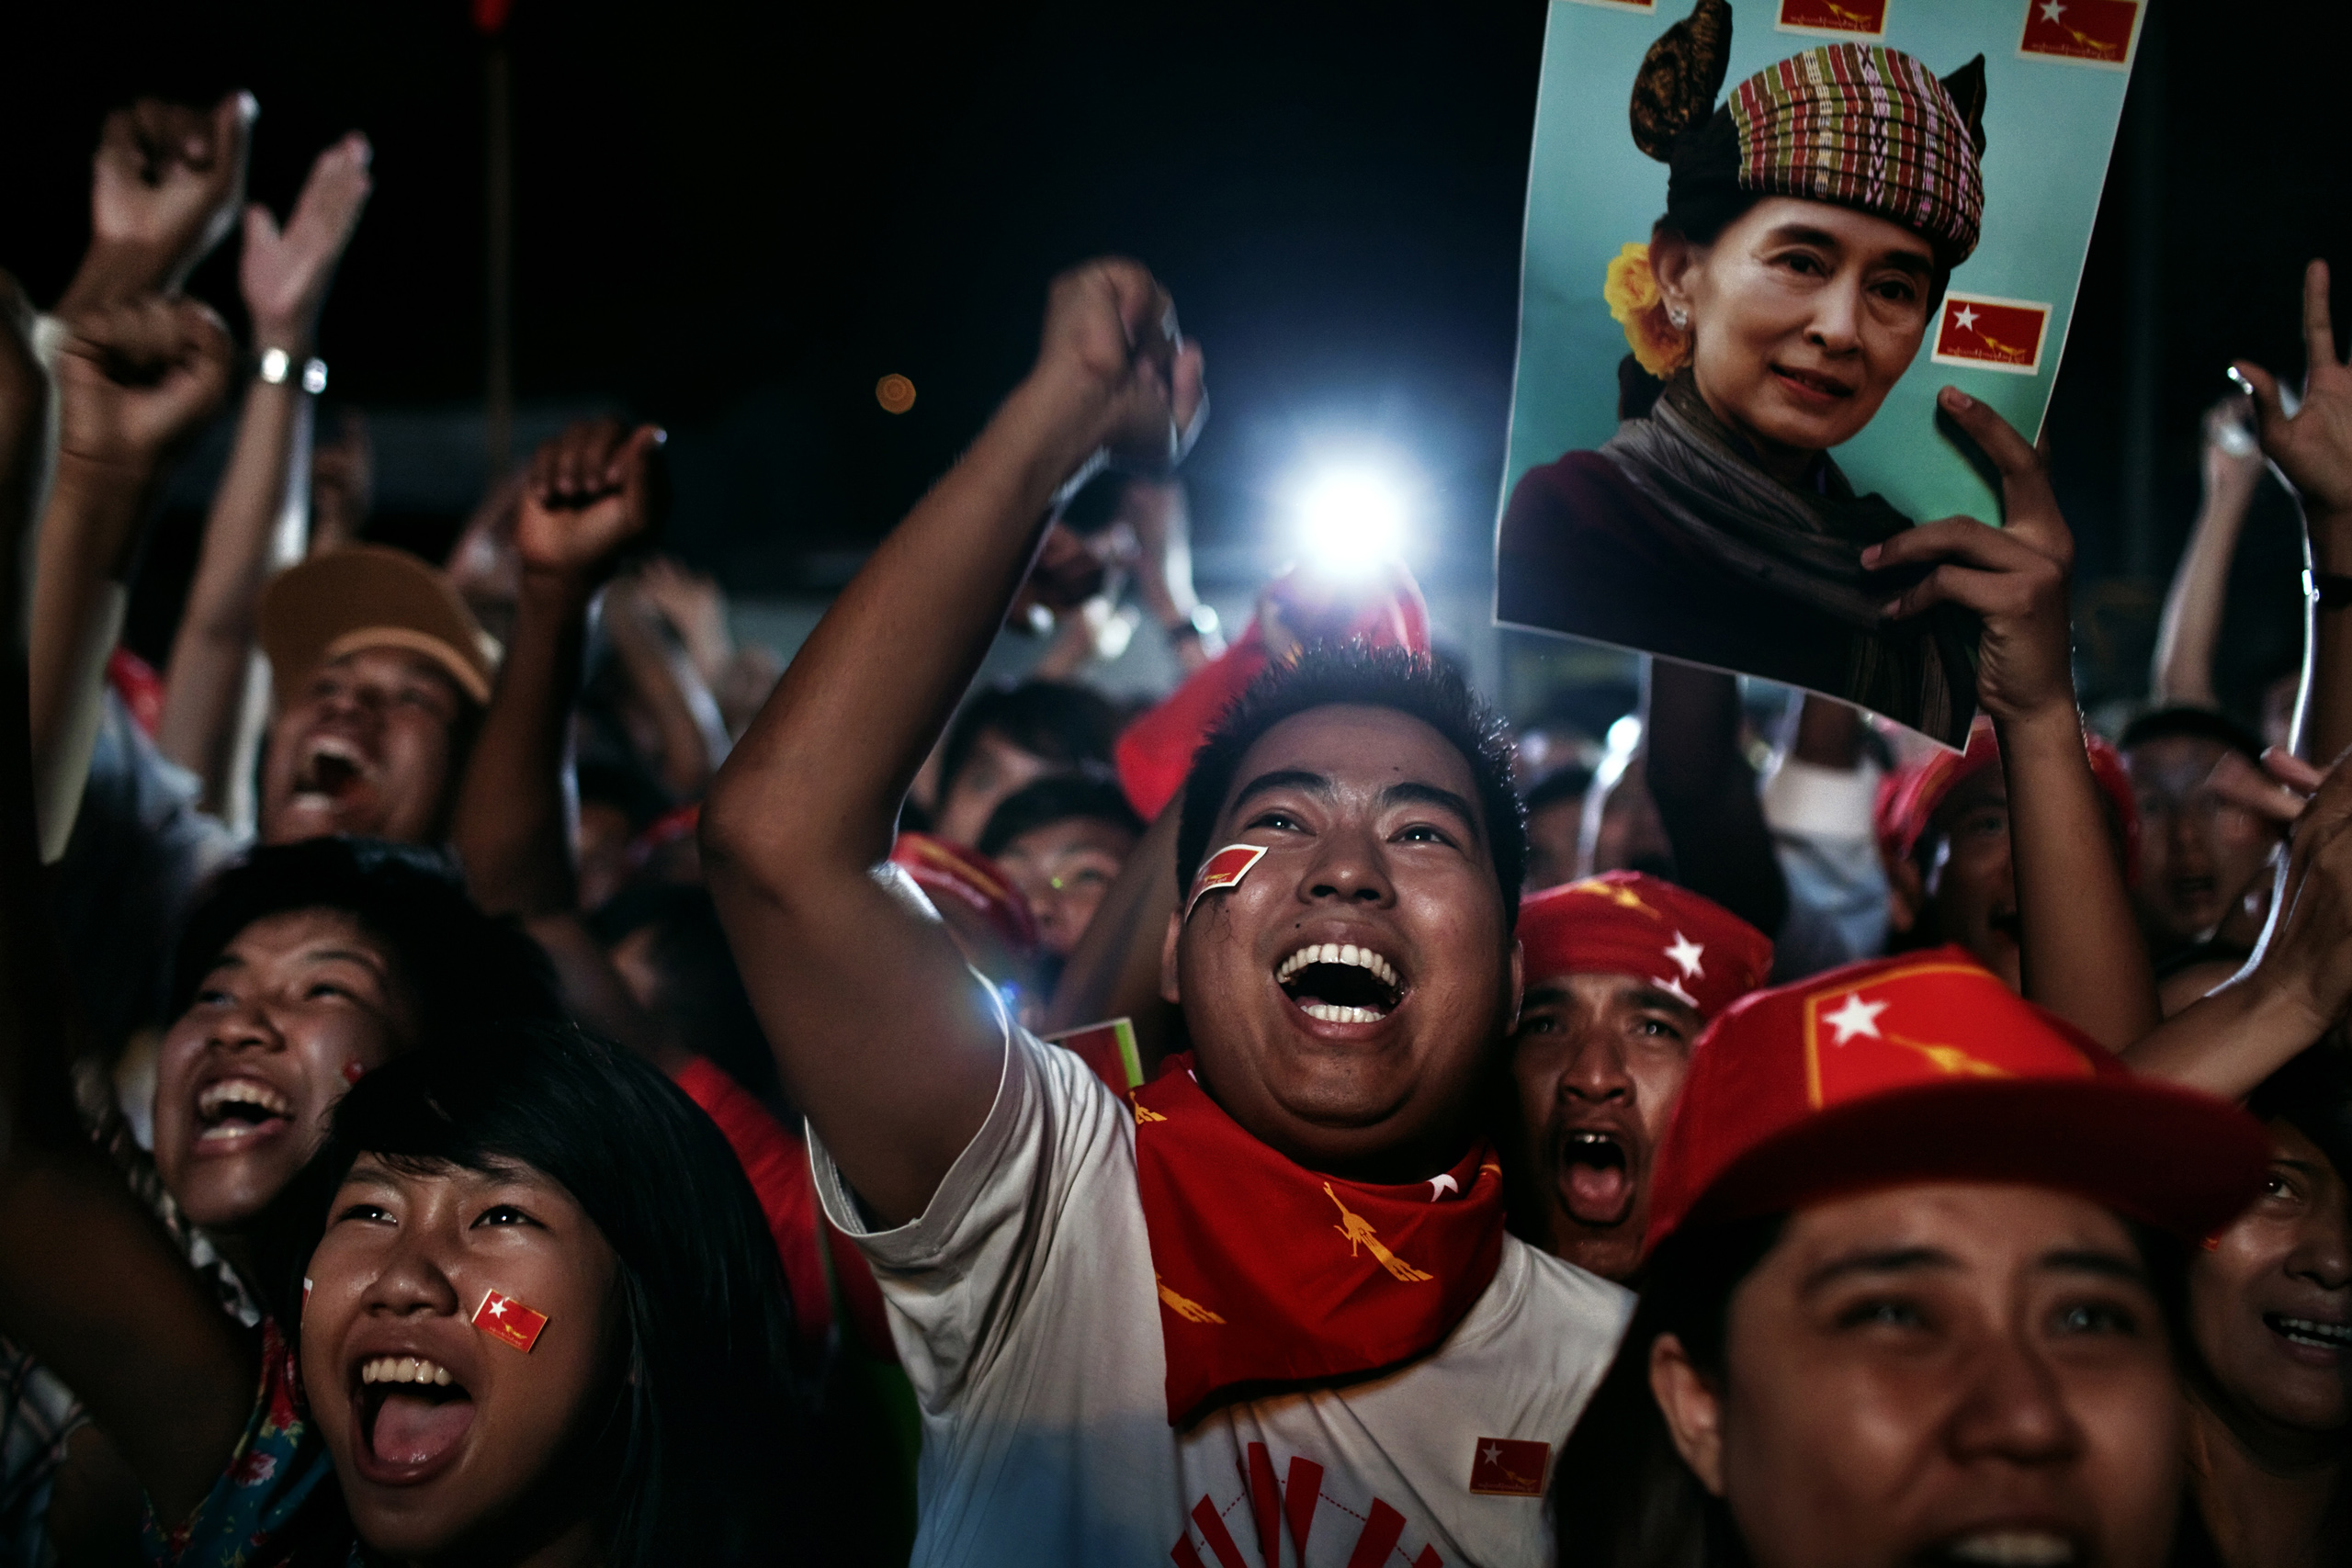 National League for Democracy (NLD) supporters celebrate at their headquarters as they watch election results Yangon, Burma, April 1, 2012.